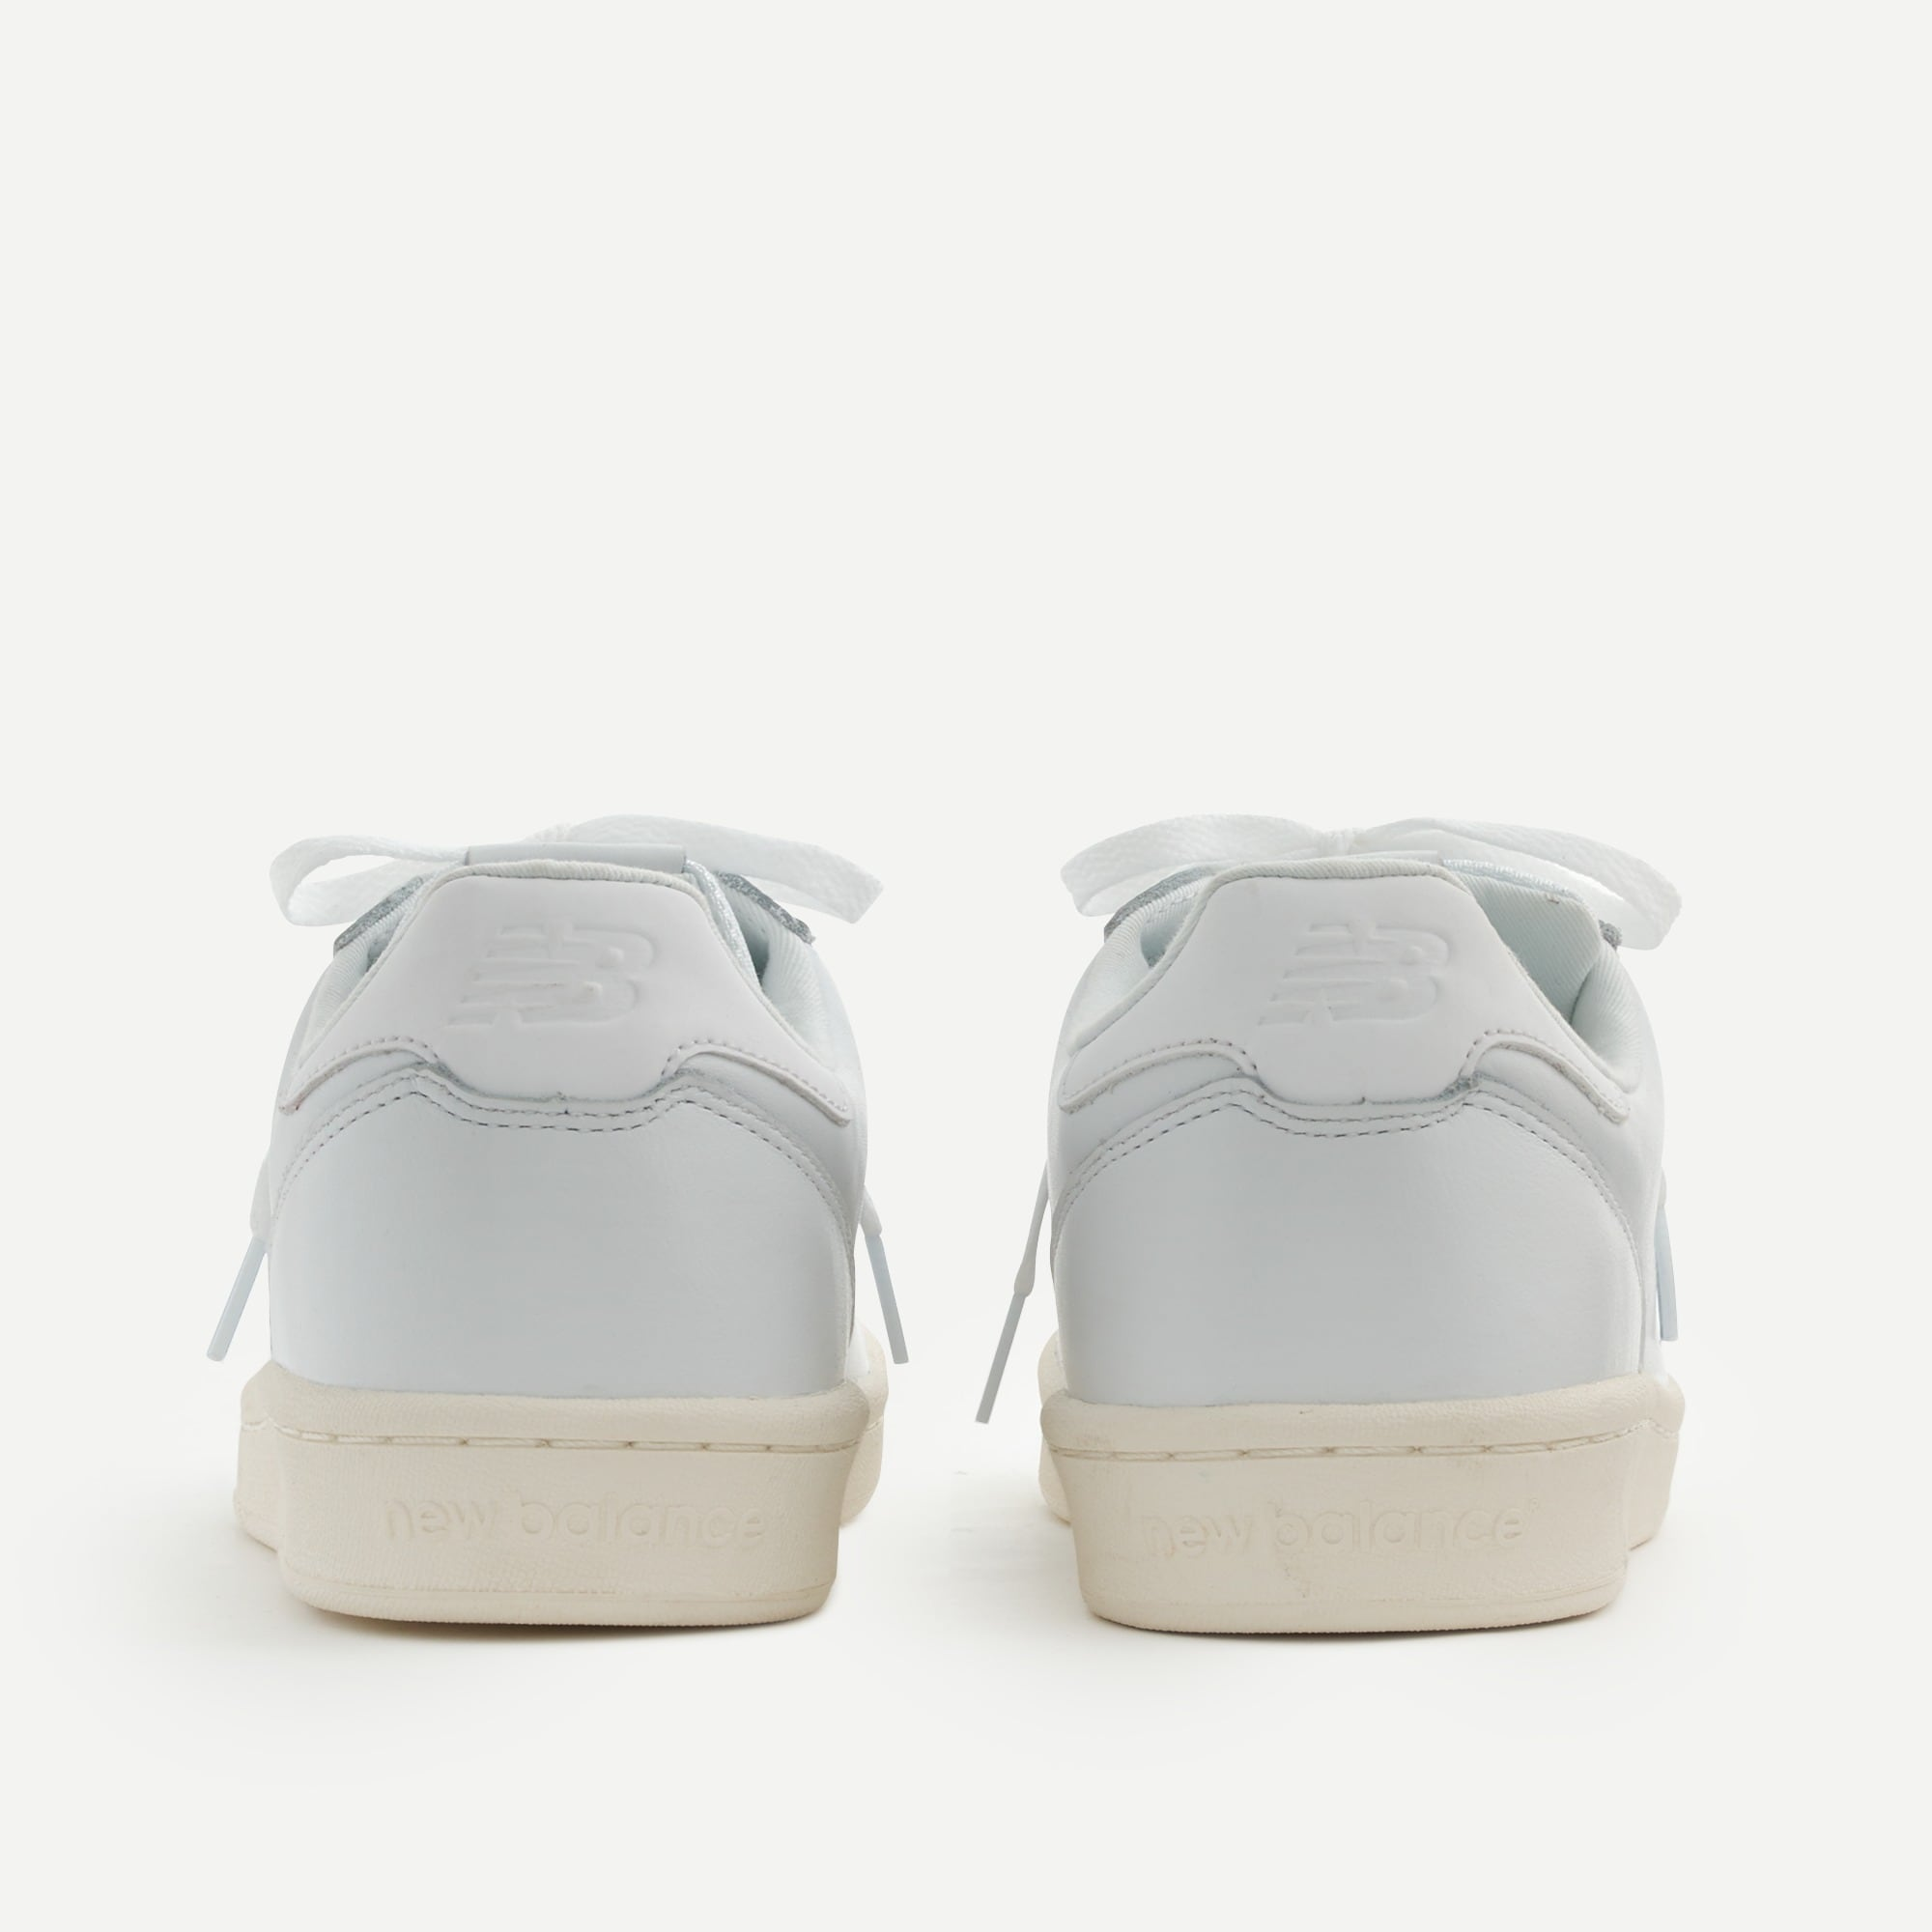 New Balance® for J.Crew 791 leather sneakers